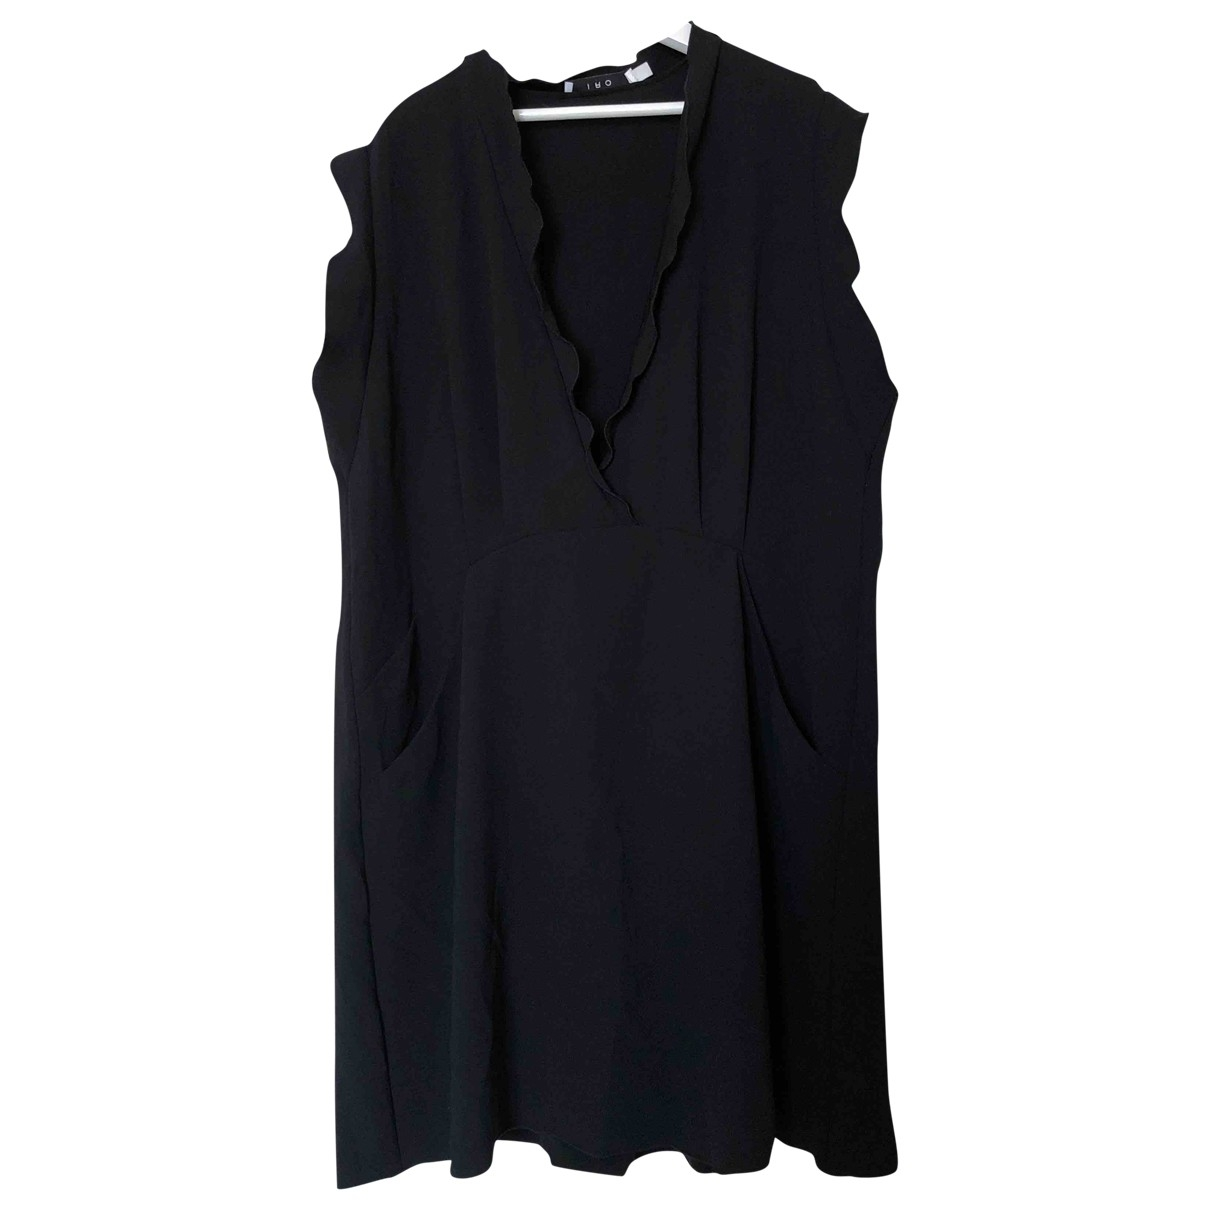 Iro \N Black dress for Women 36 FR